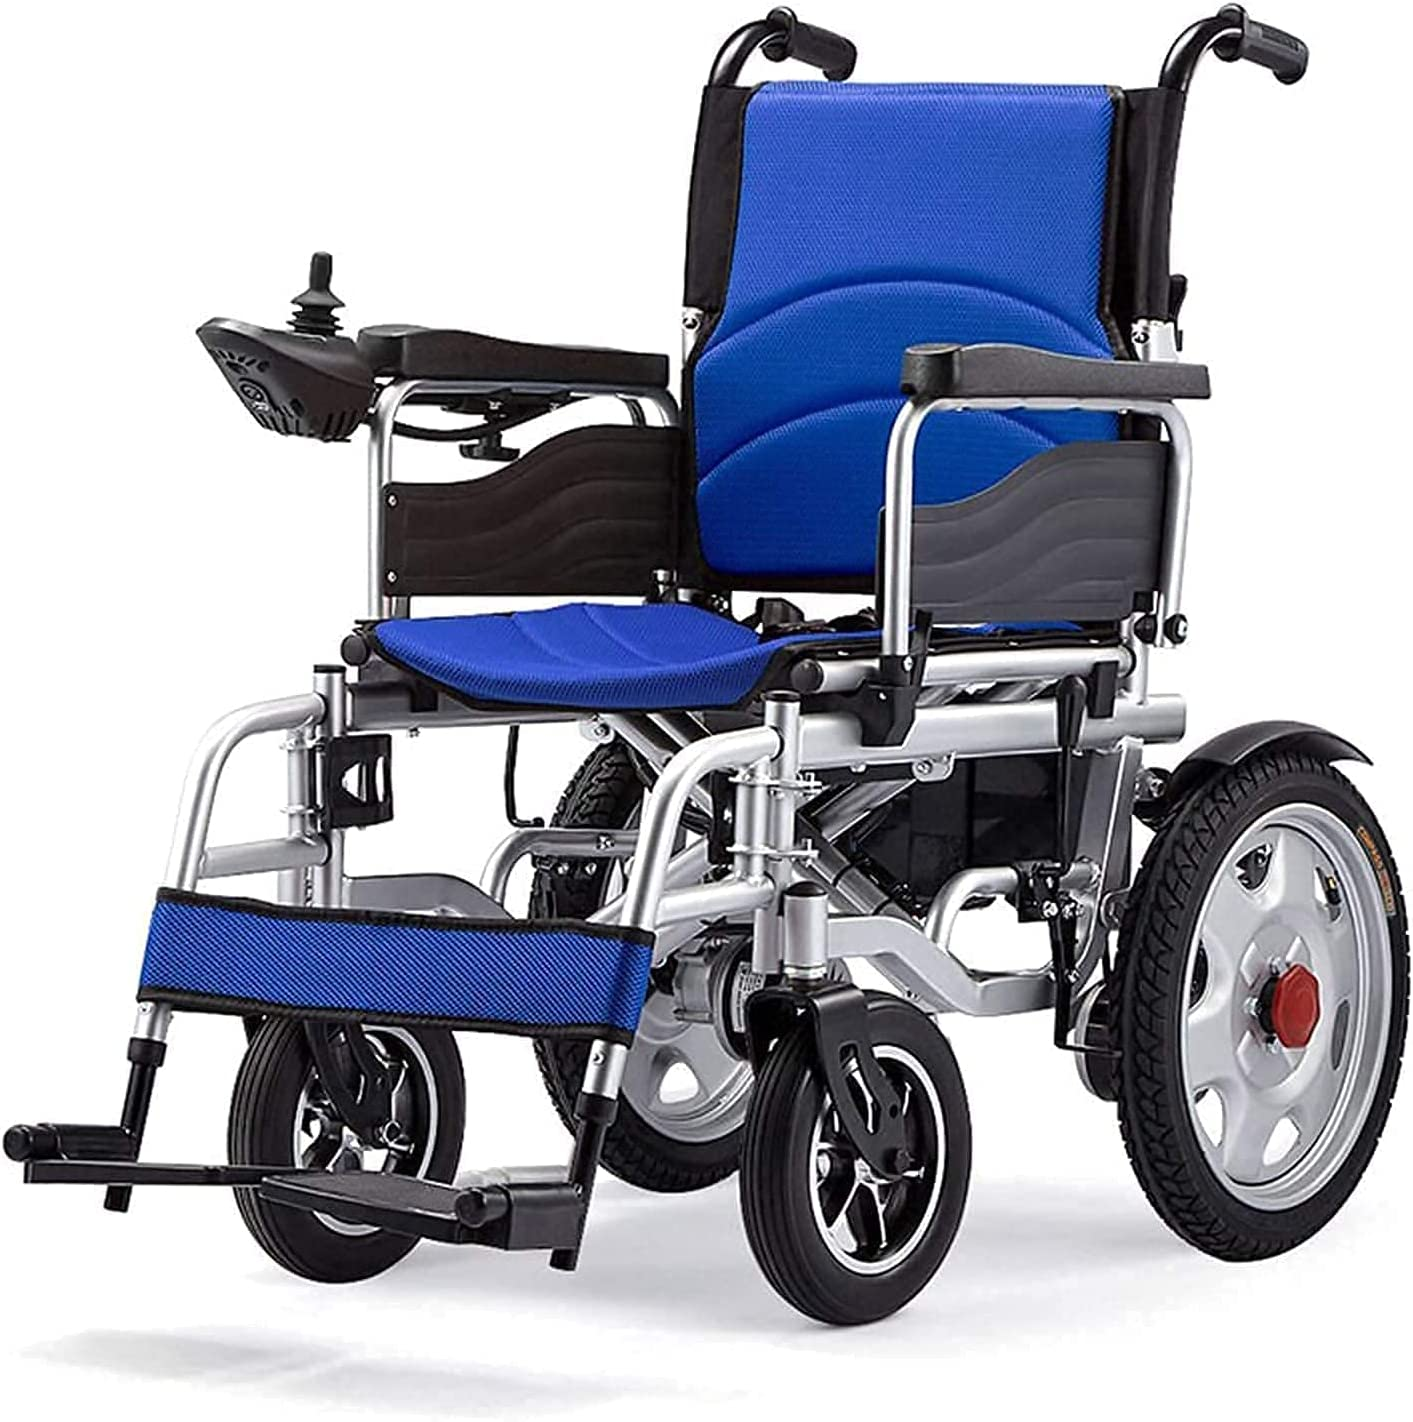 New York Mall Electric Wheelchair Breathable Backrest NEW before selling Foldable Lightweight Aut